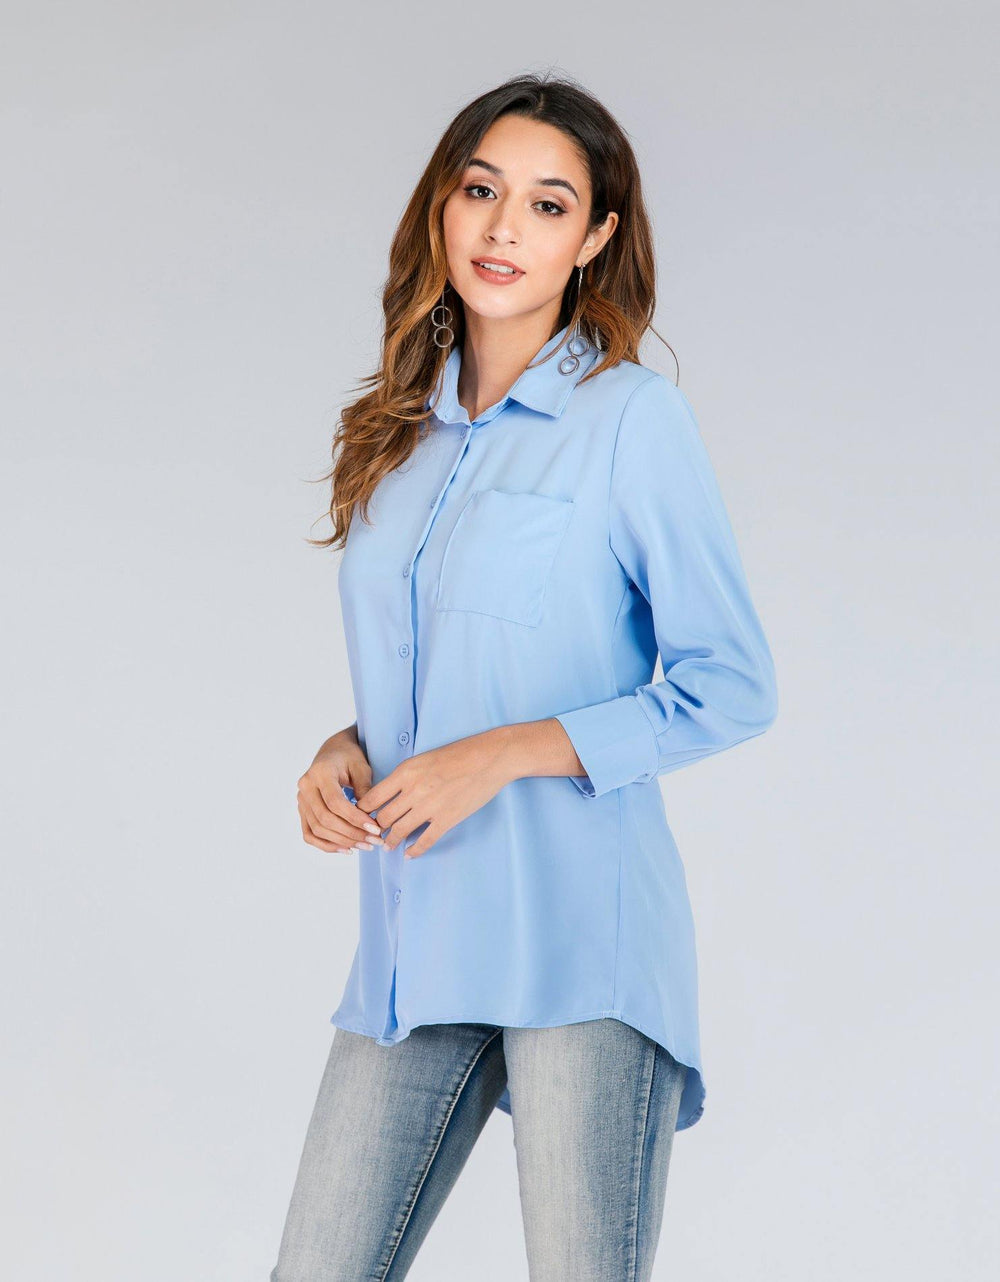 Button-Down Collared Shirt - Brandsea UK